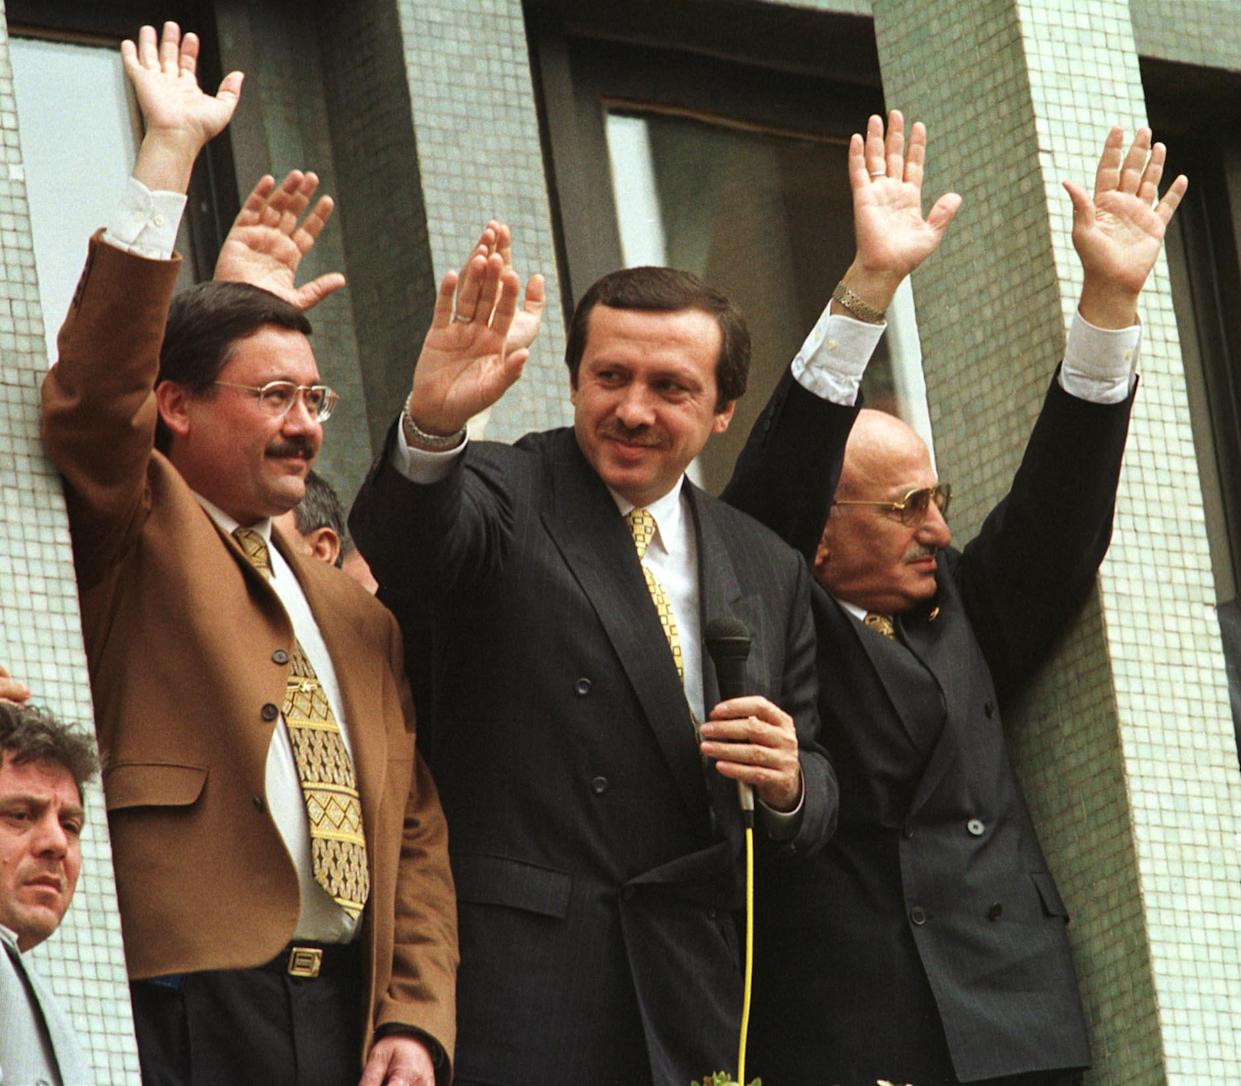 Then-mayor of Istanbul Recep Tayyip Erdogan, center, waves to his supporters in 1998. (Photo: Murad Sezer/AP)